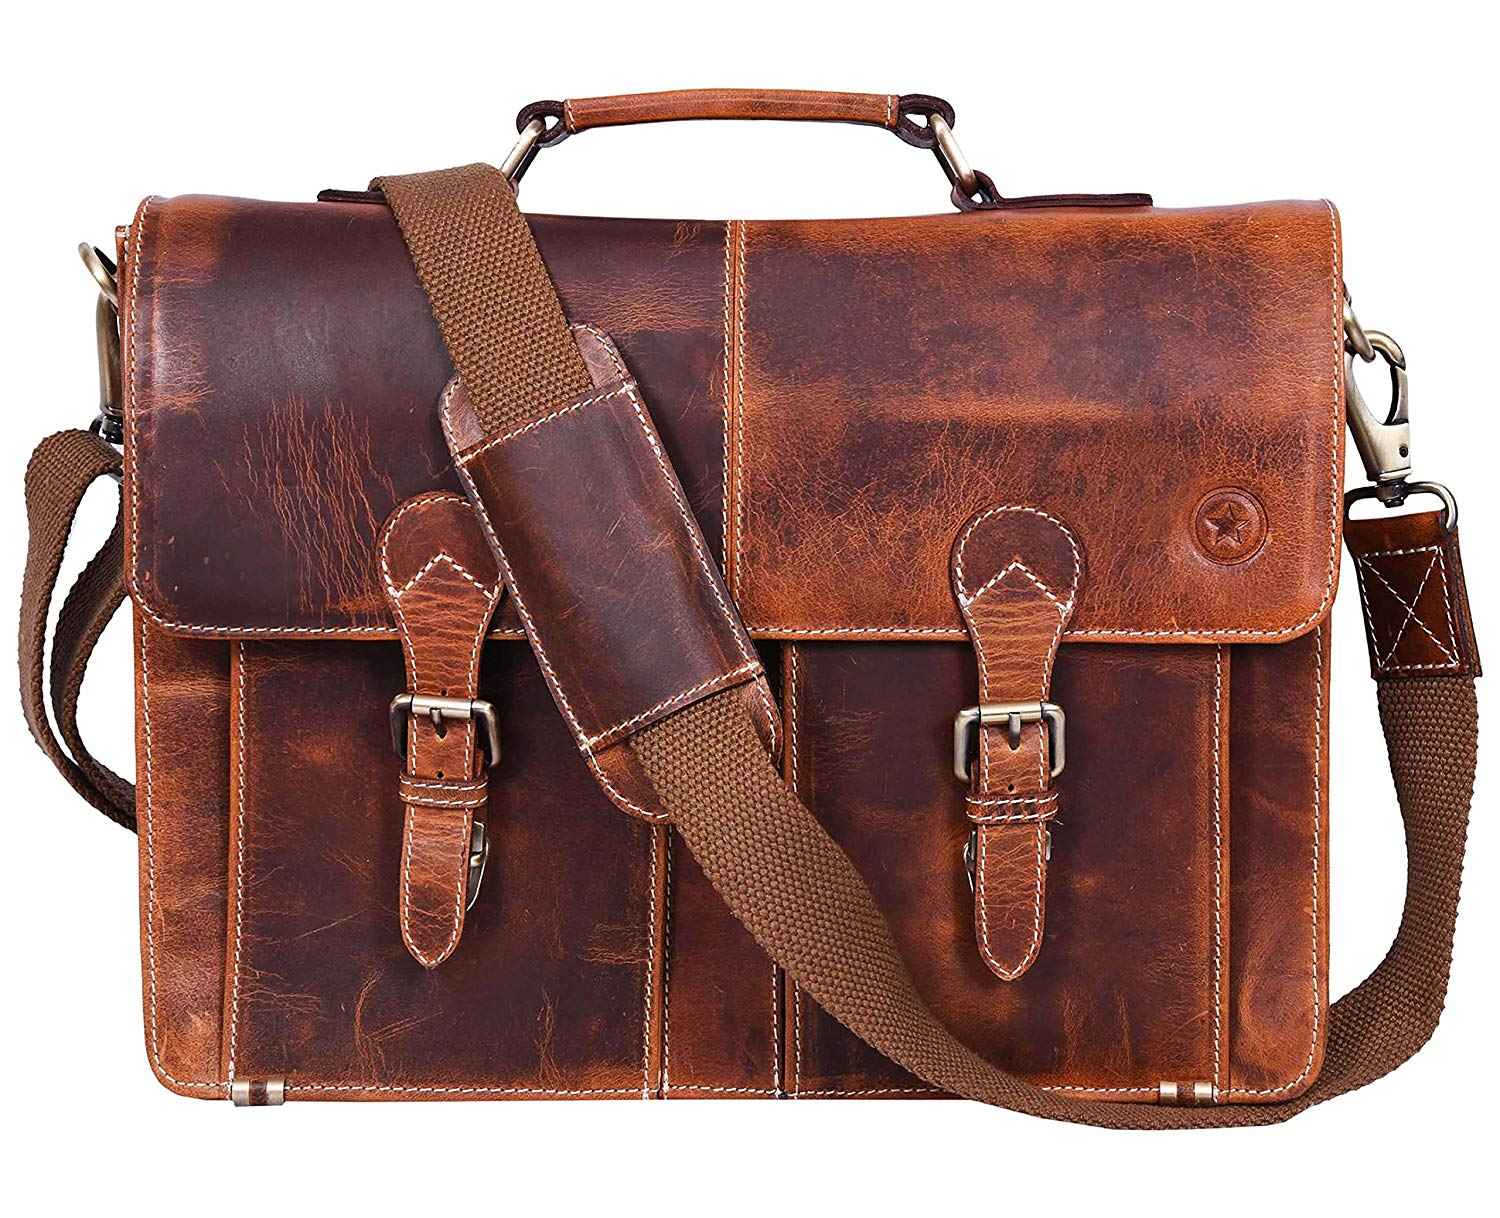 Leather Bags and Accessories One-Day Sale    via Amazon    Over 25% Off!